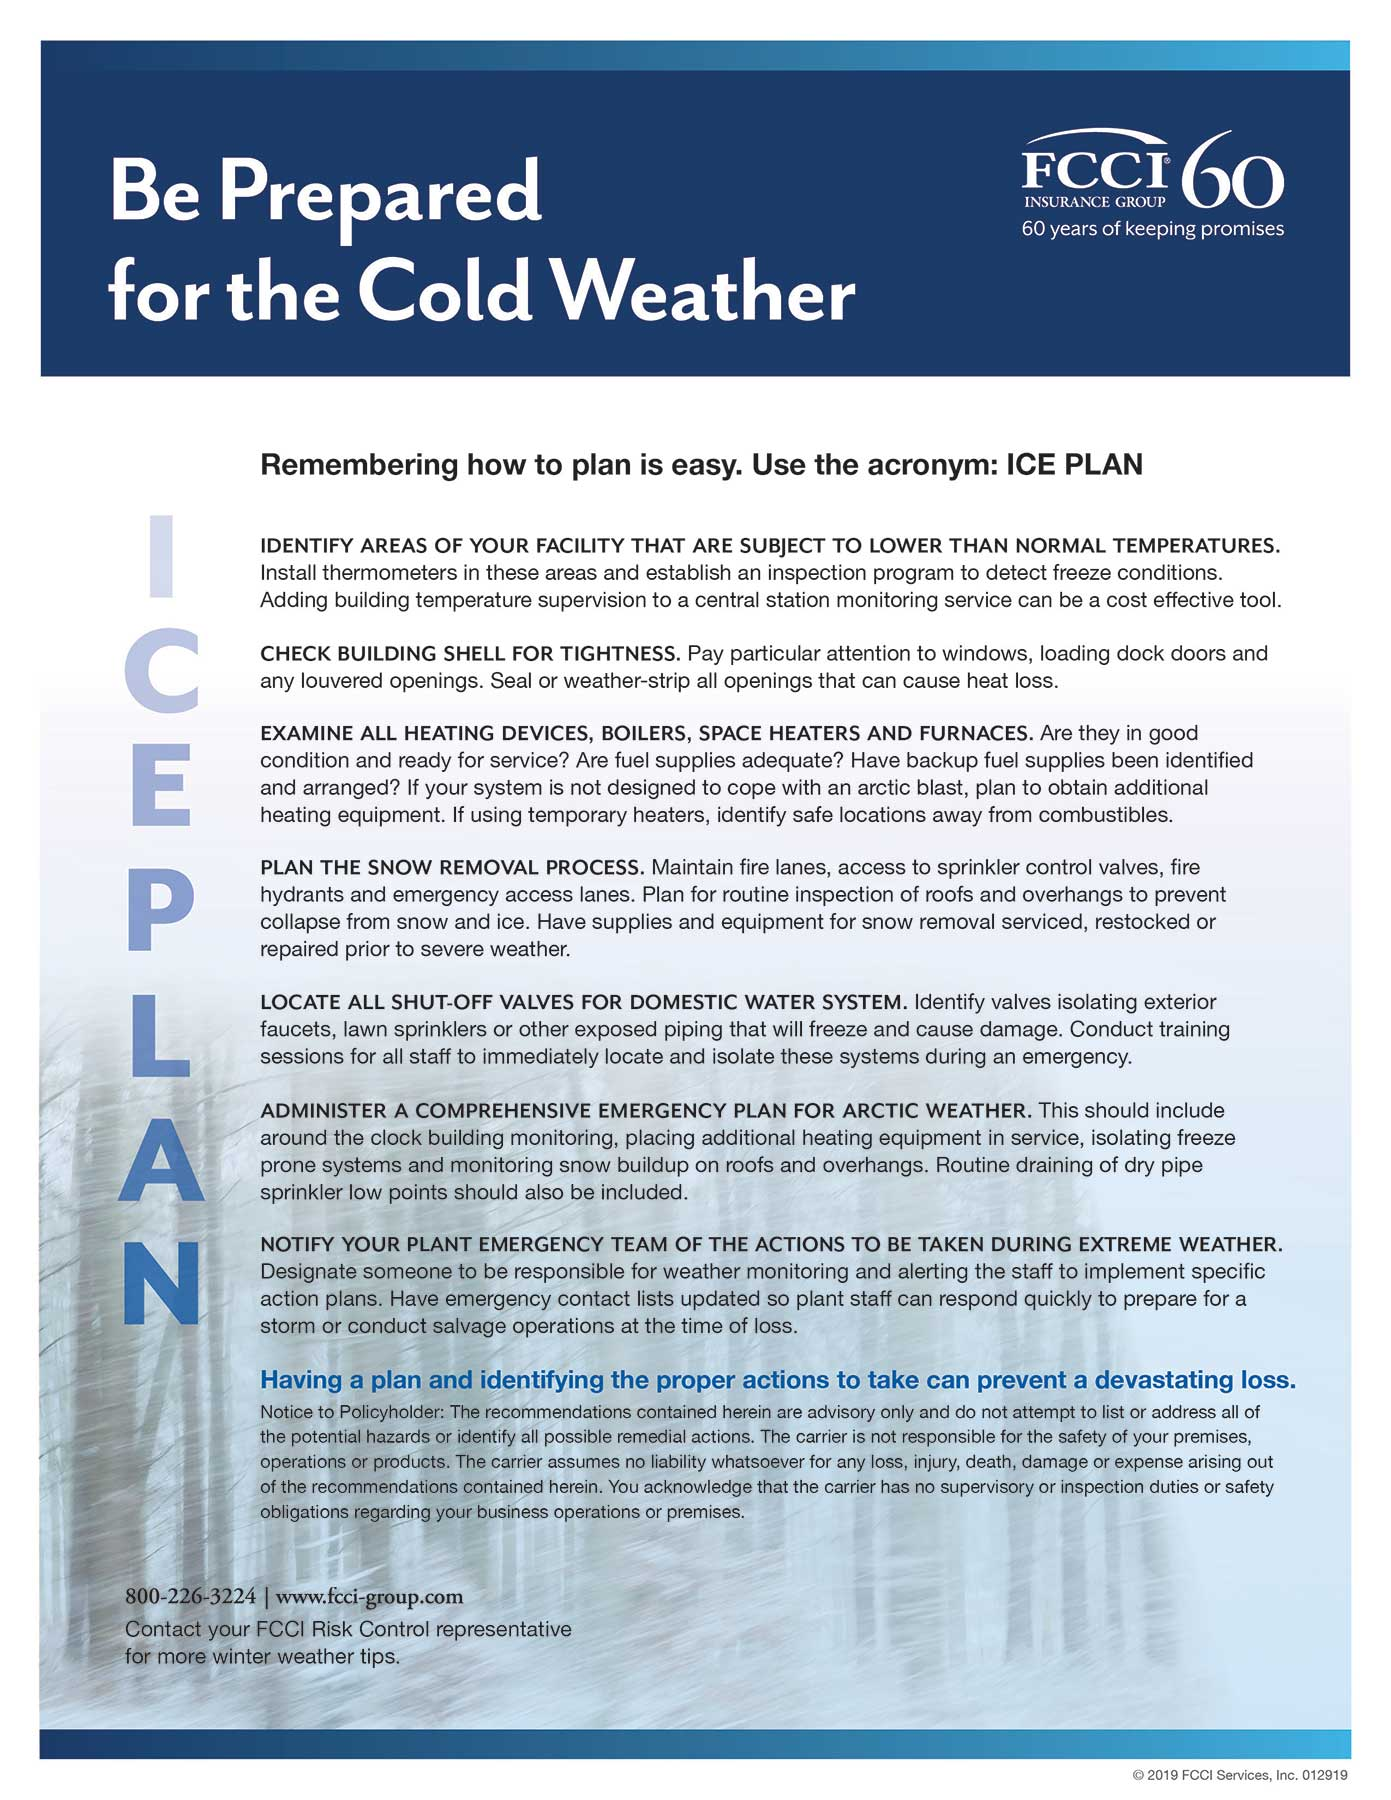 FCCI Ice Plan tips  flyer